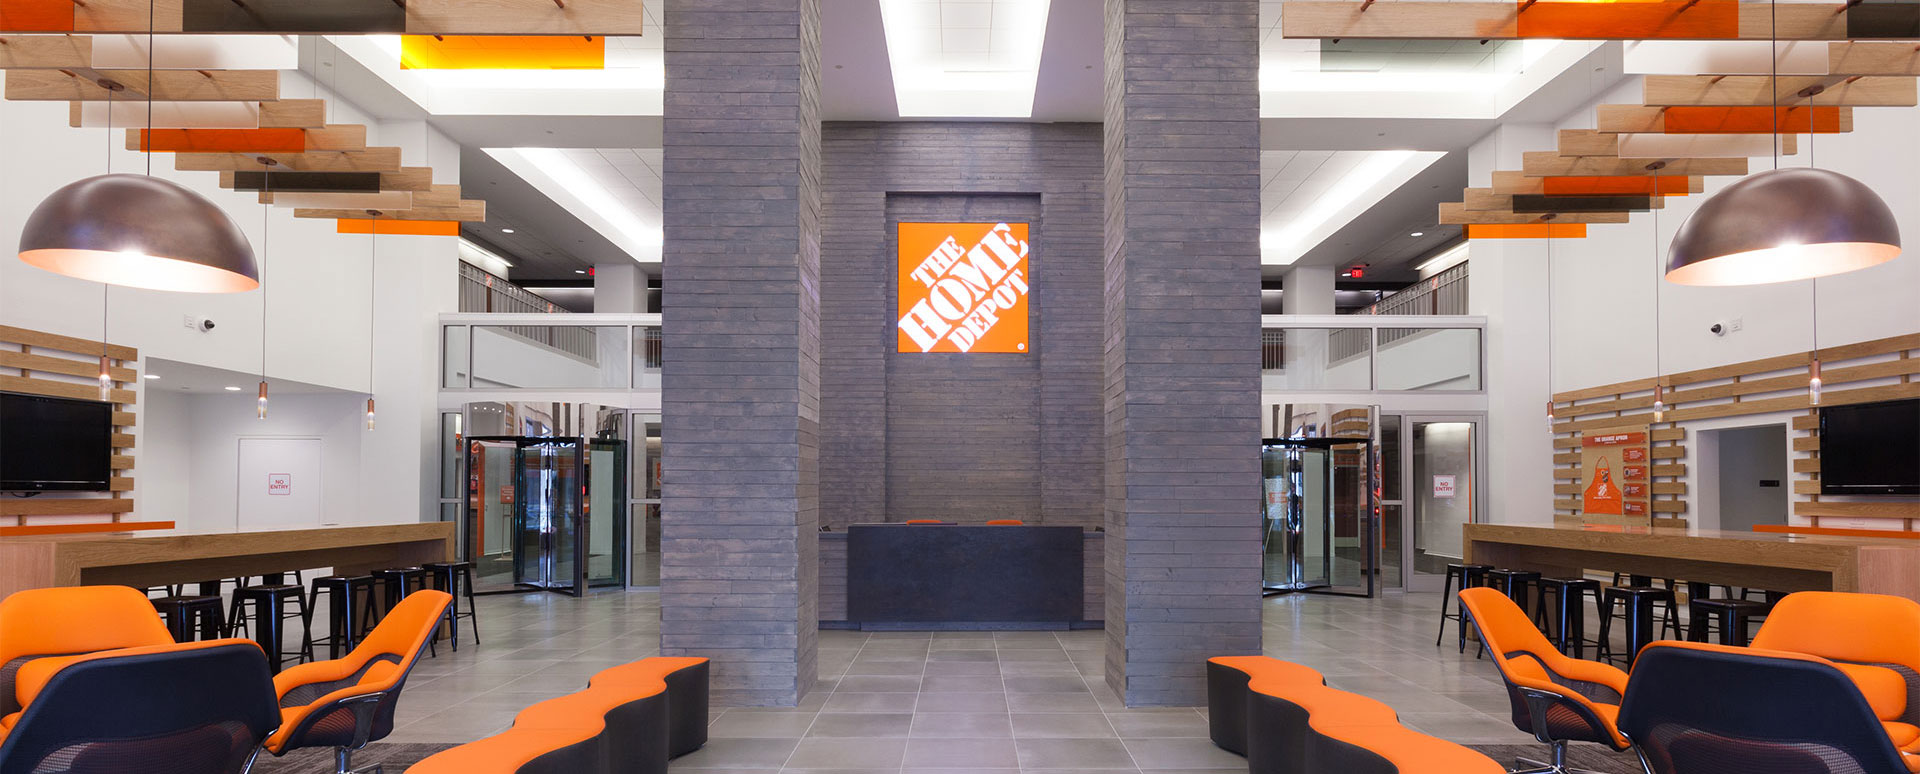 Home Depot Lobby Renovation